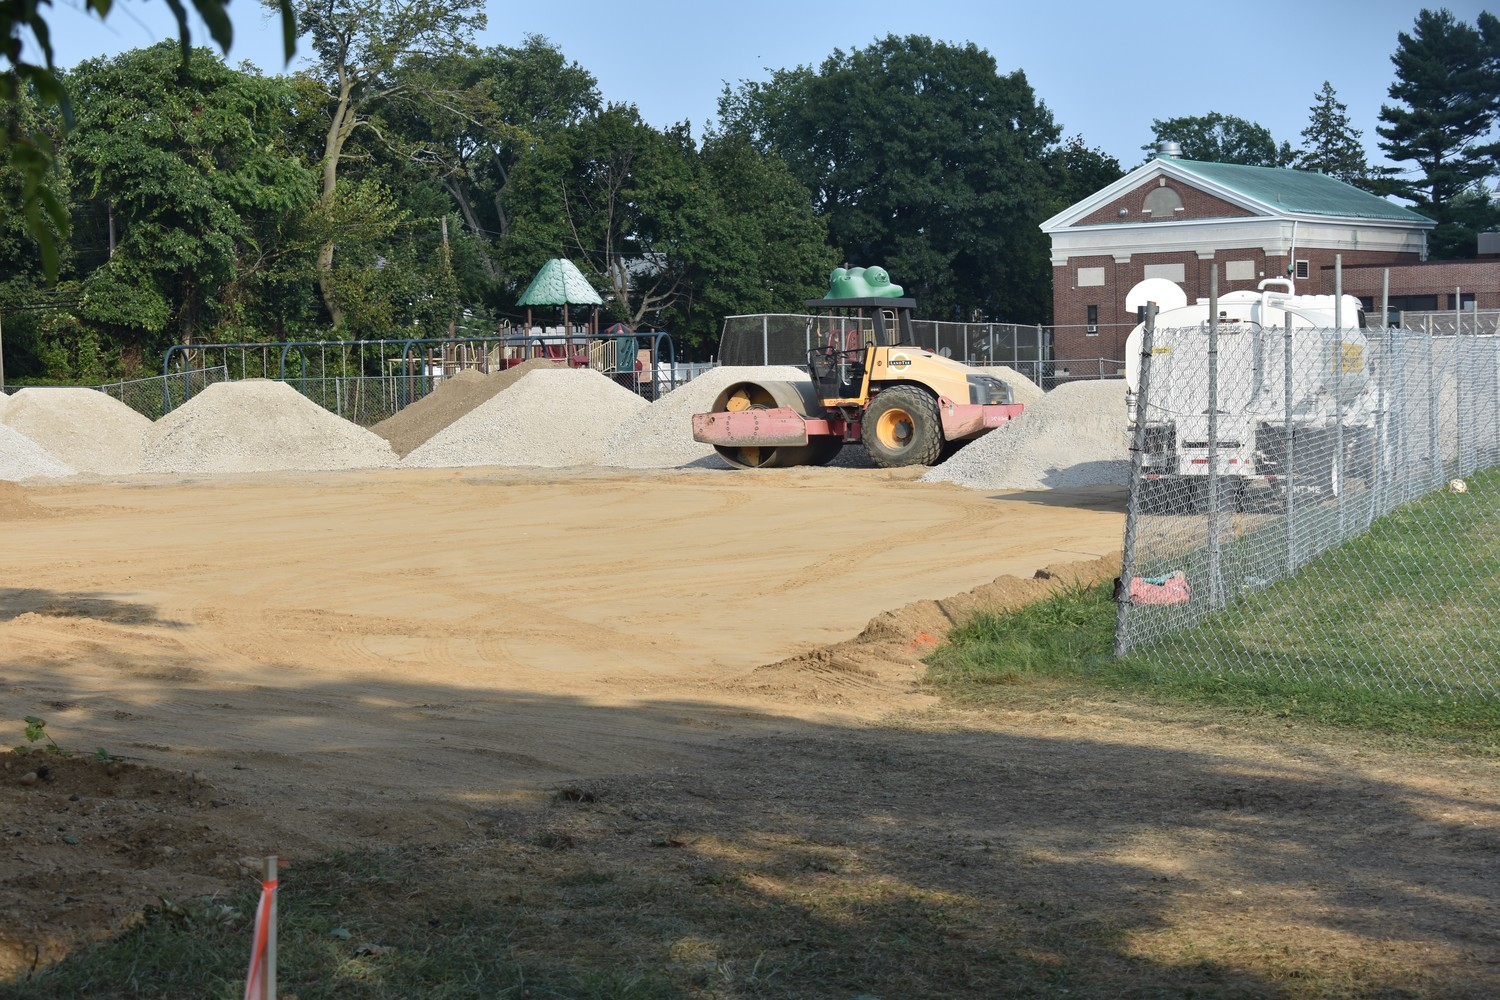 The tennis courts at Jennie E. Hewitt Elementary School are currently being replaced.